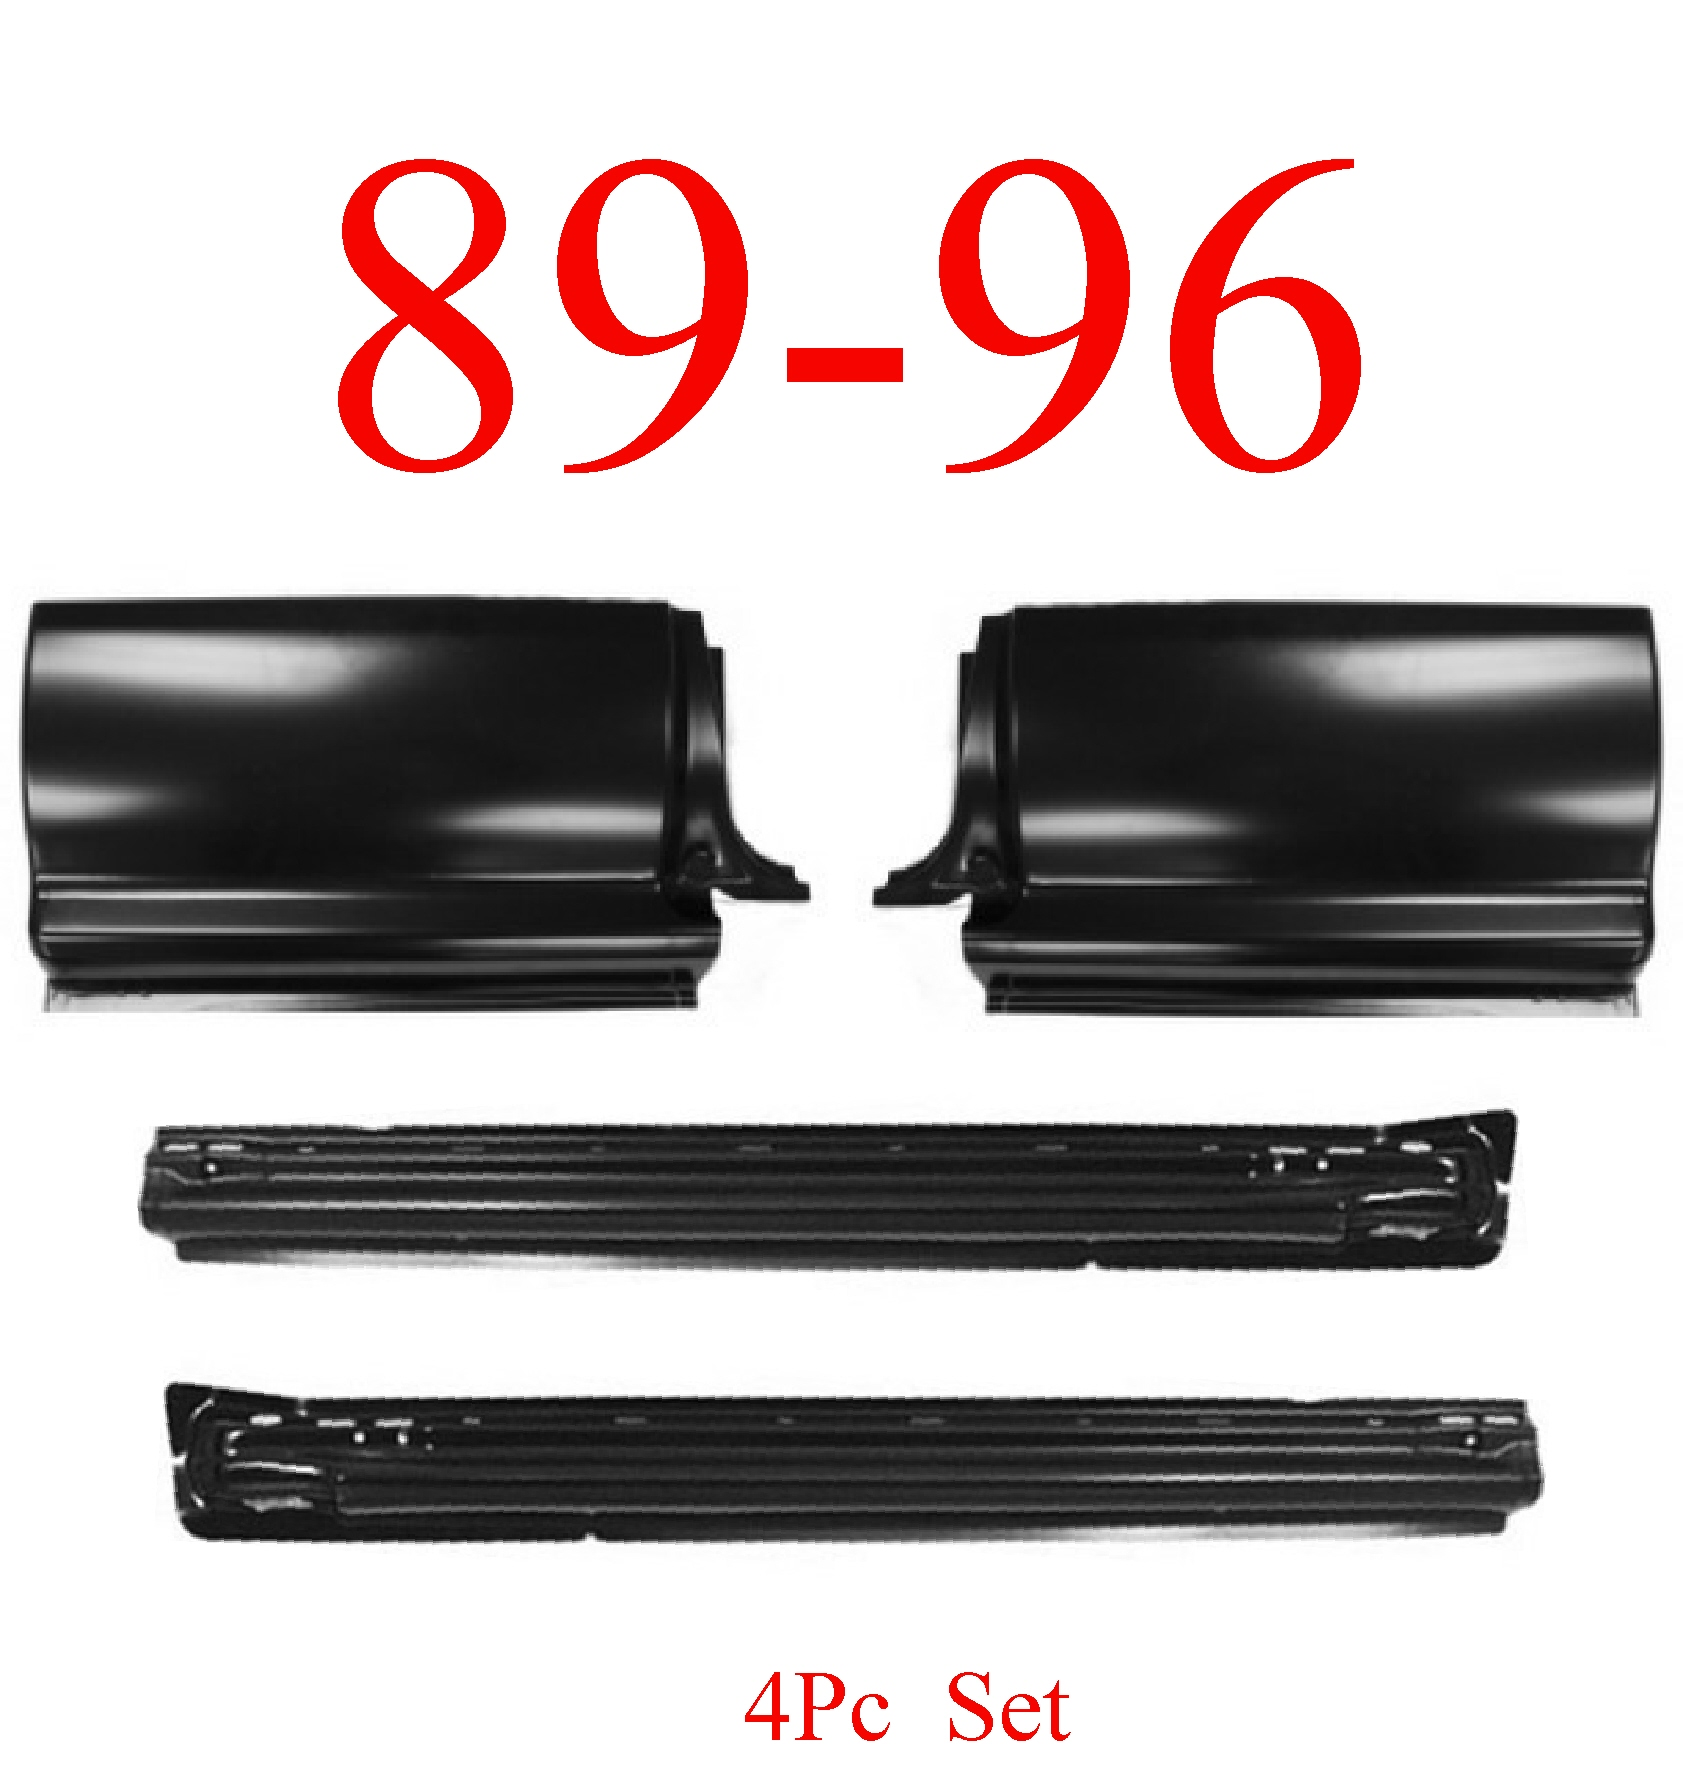 89-96 Toyota Pick Up 4Pc X-Rocker & X-Cab Corner Kit